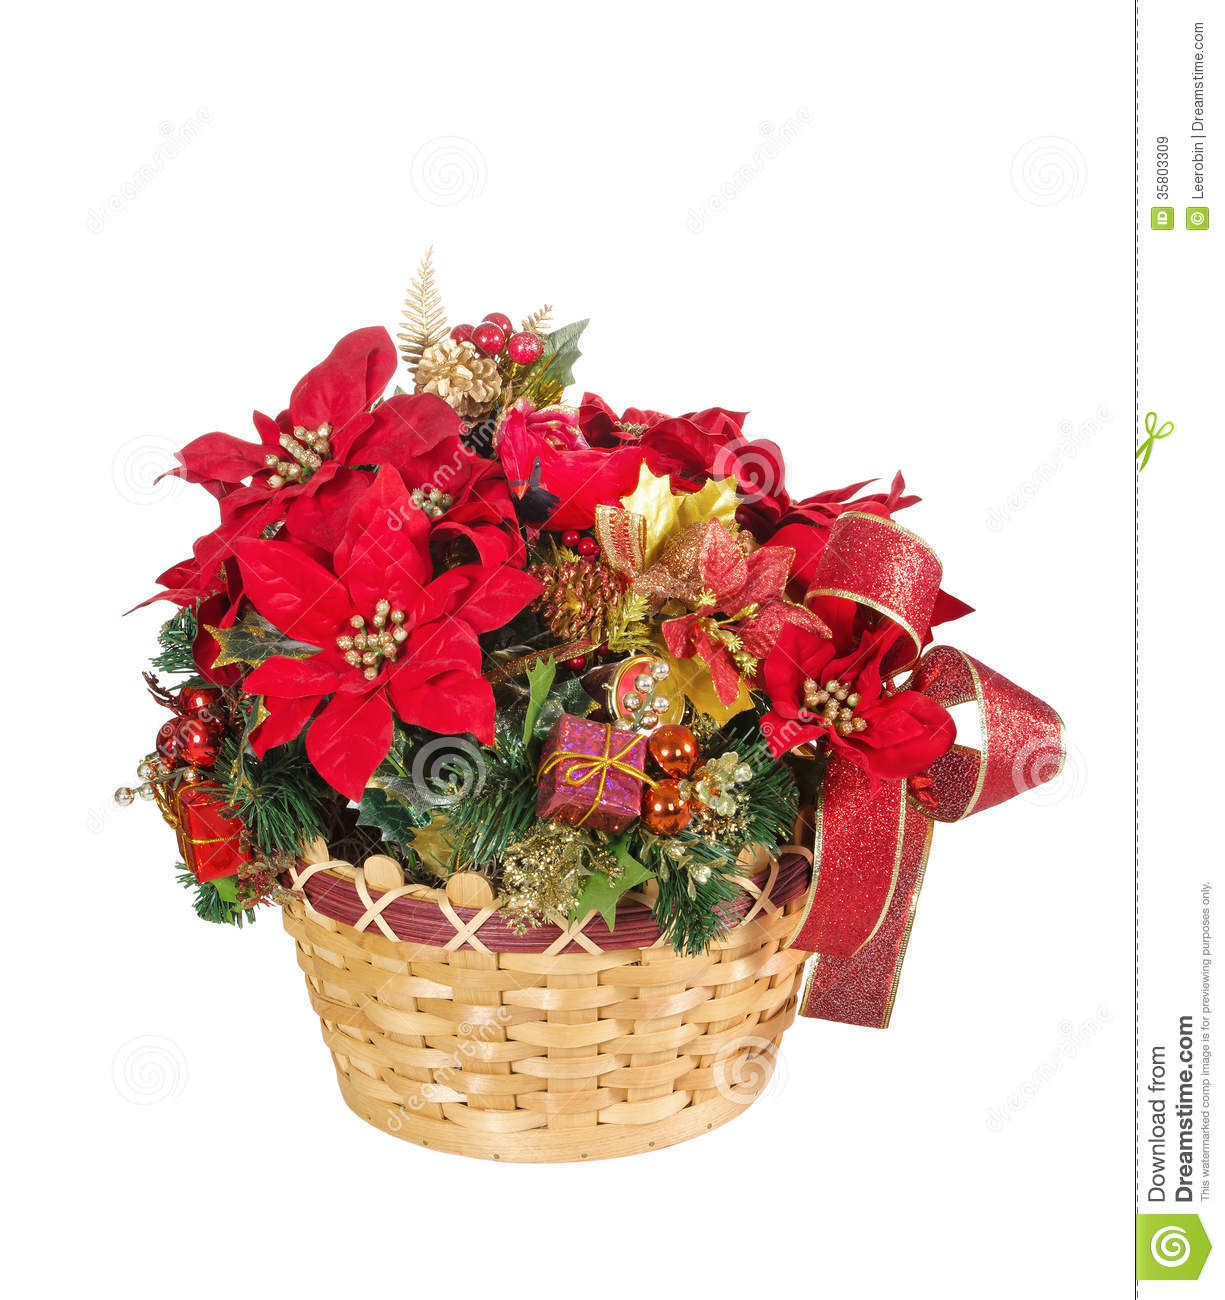 Holiday Flower Arrangement Basket Royalty Free Stock